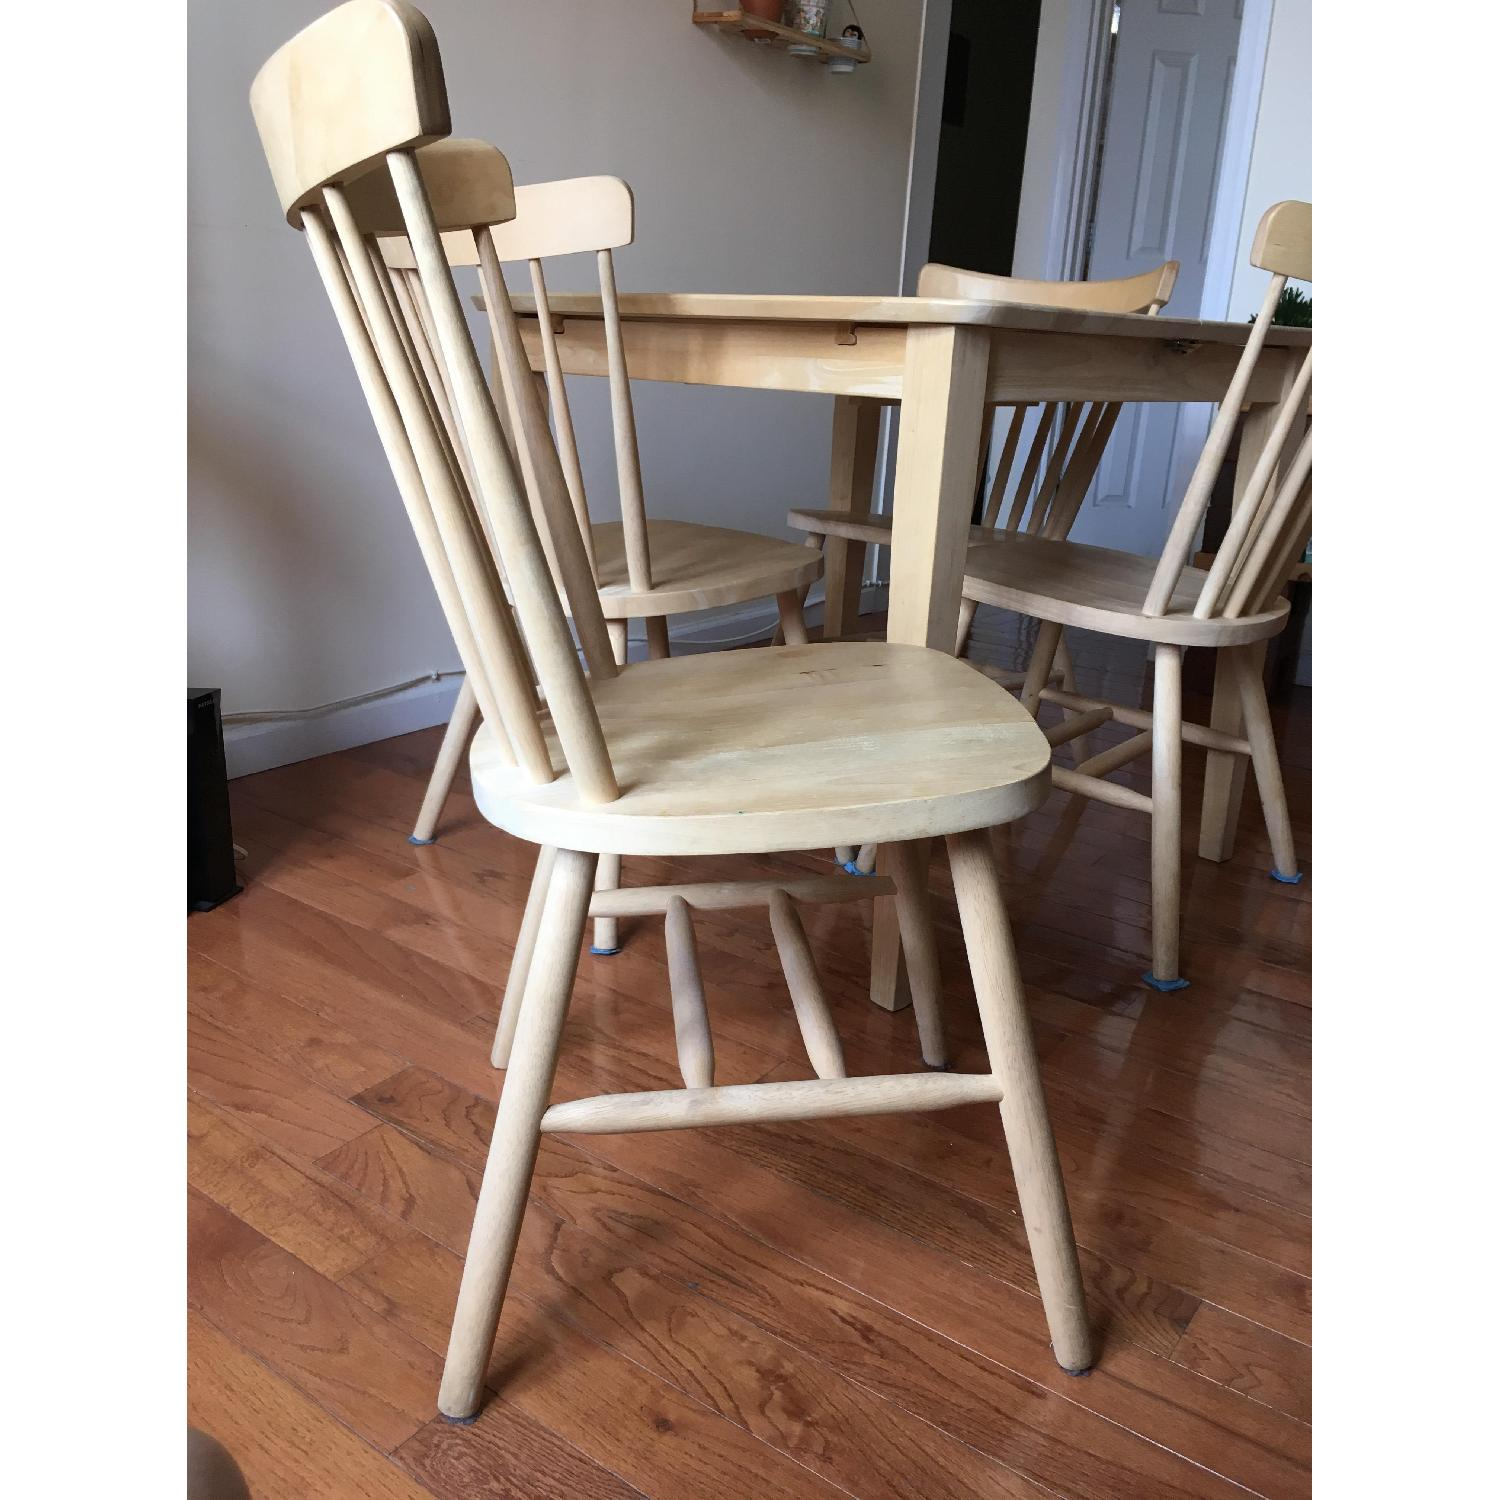 International Concepts Unfinished Wood Table w/ 4 Chairs - image-6